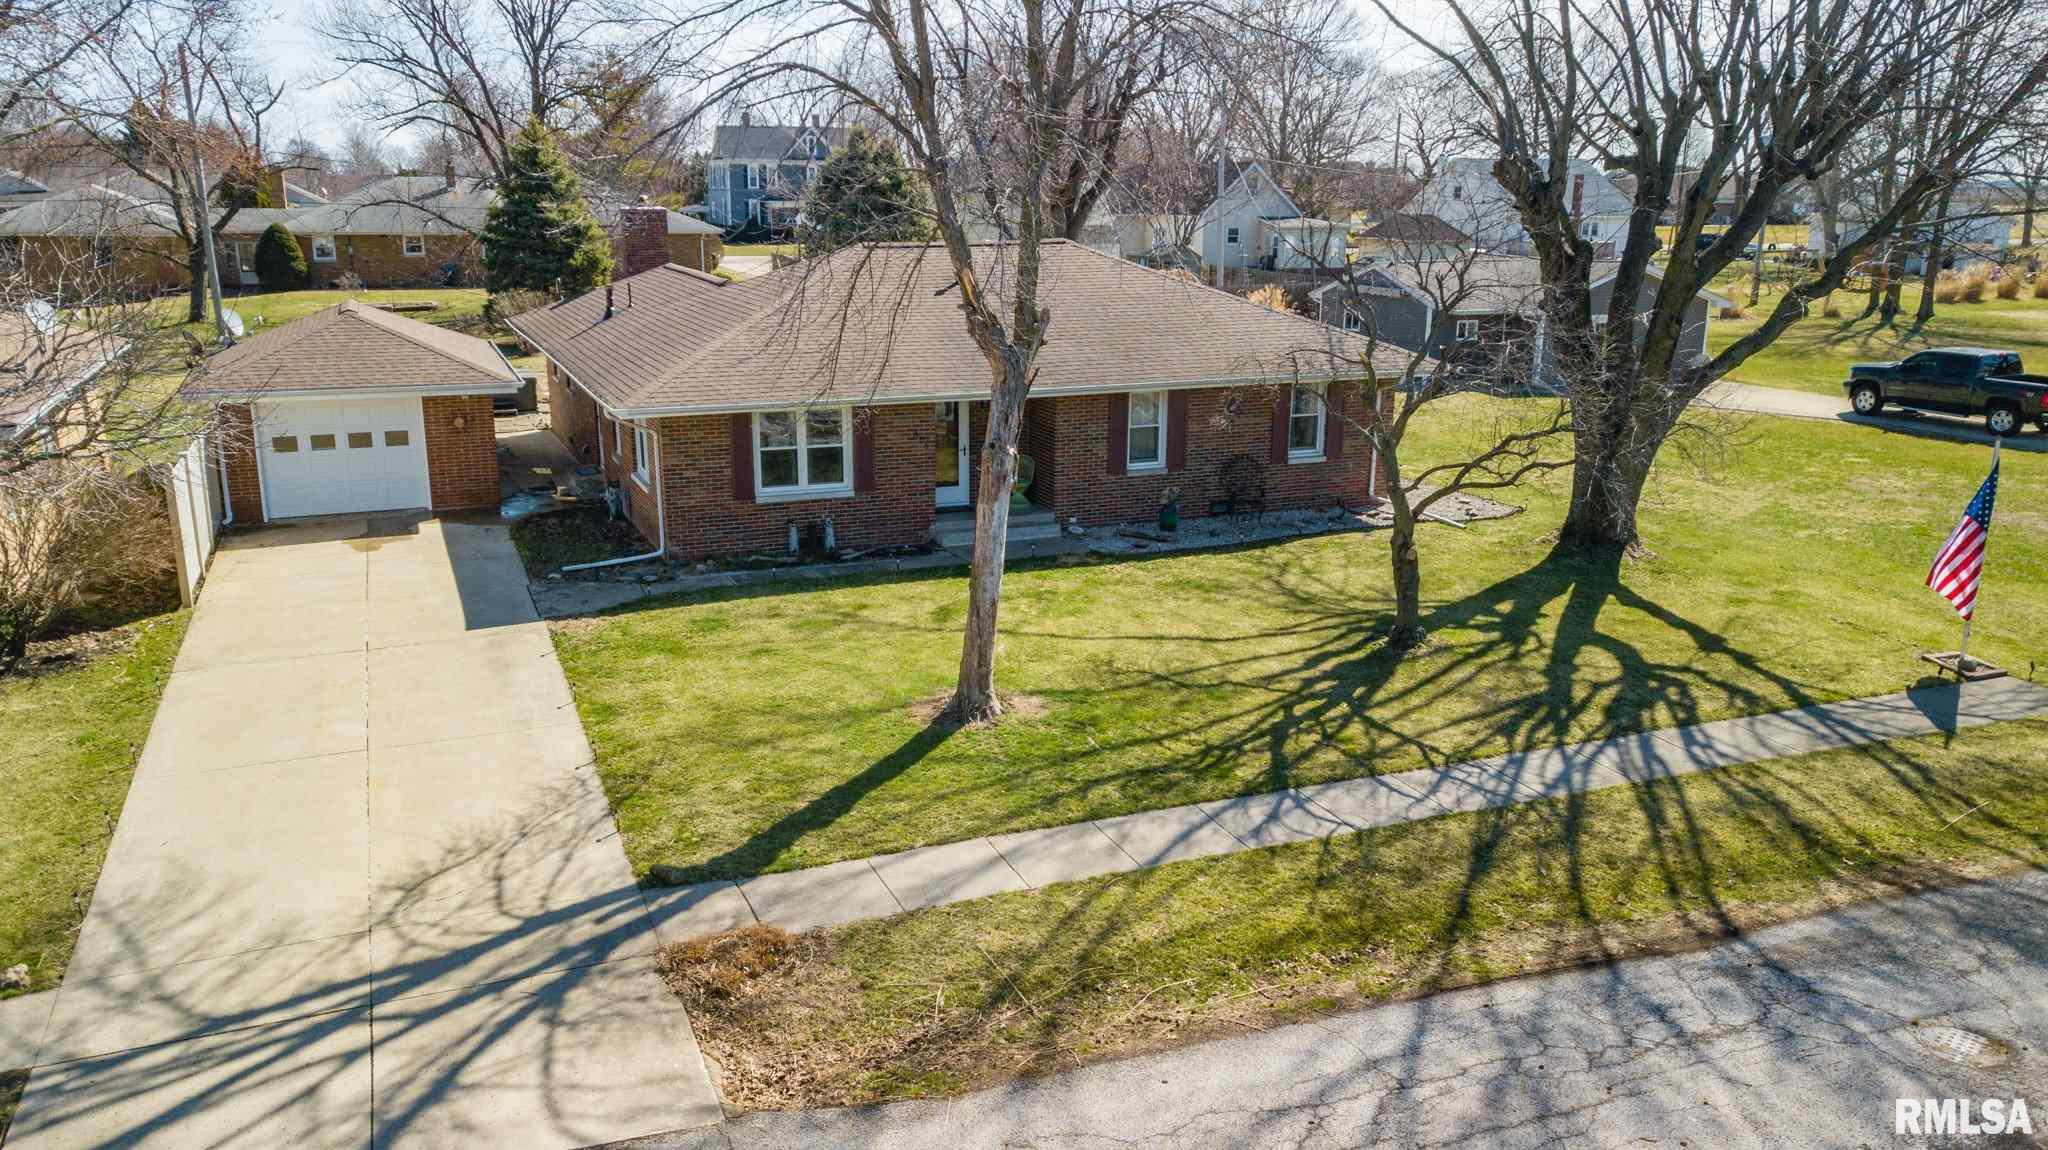 506 S MAIN Property Photo - Minier, IL real estate listing